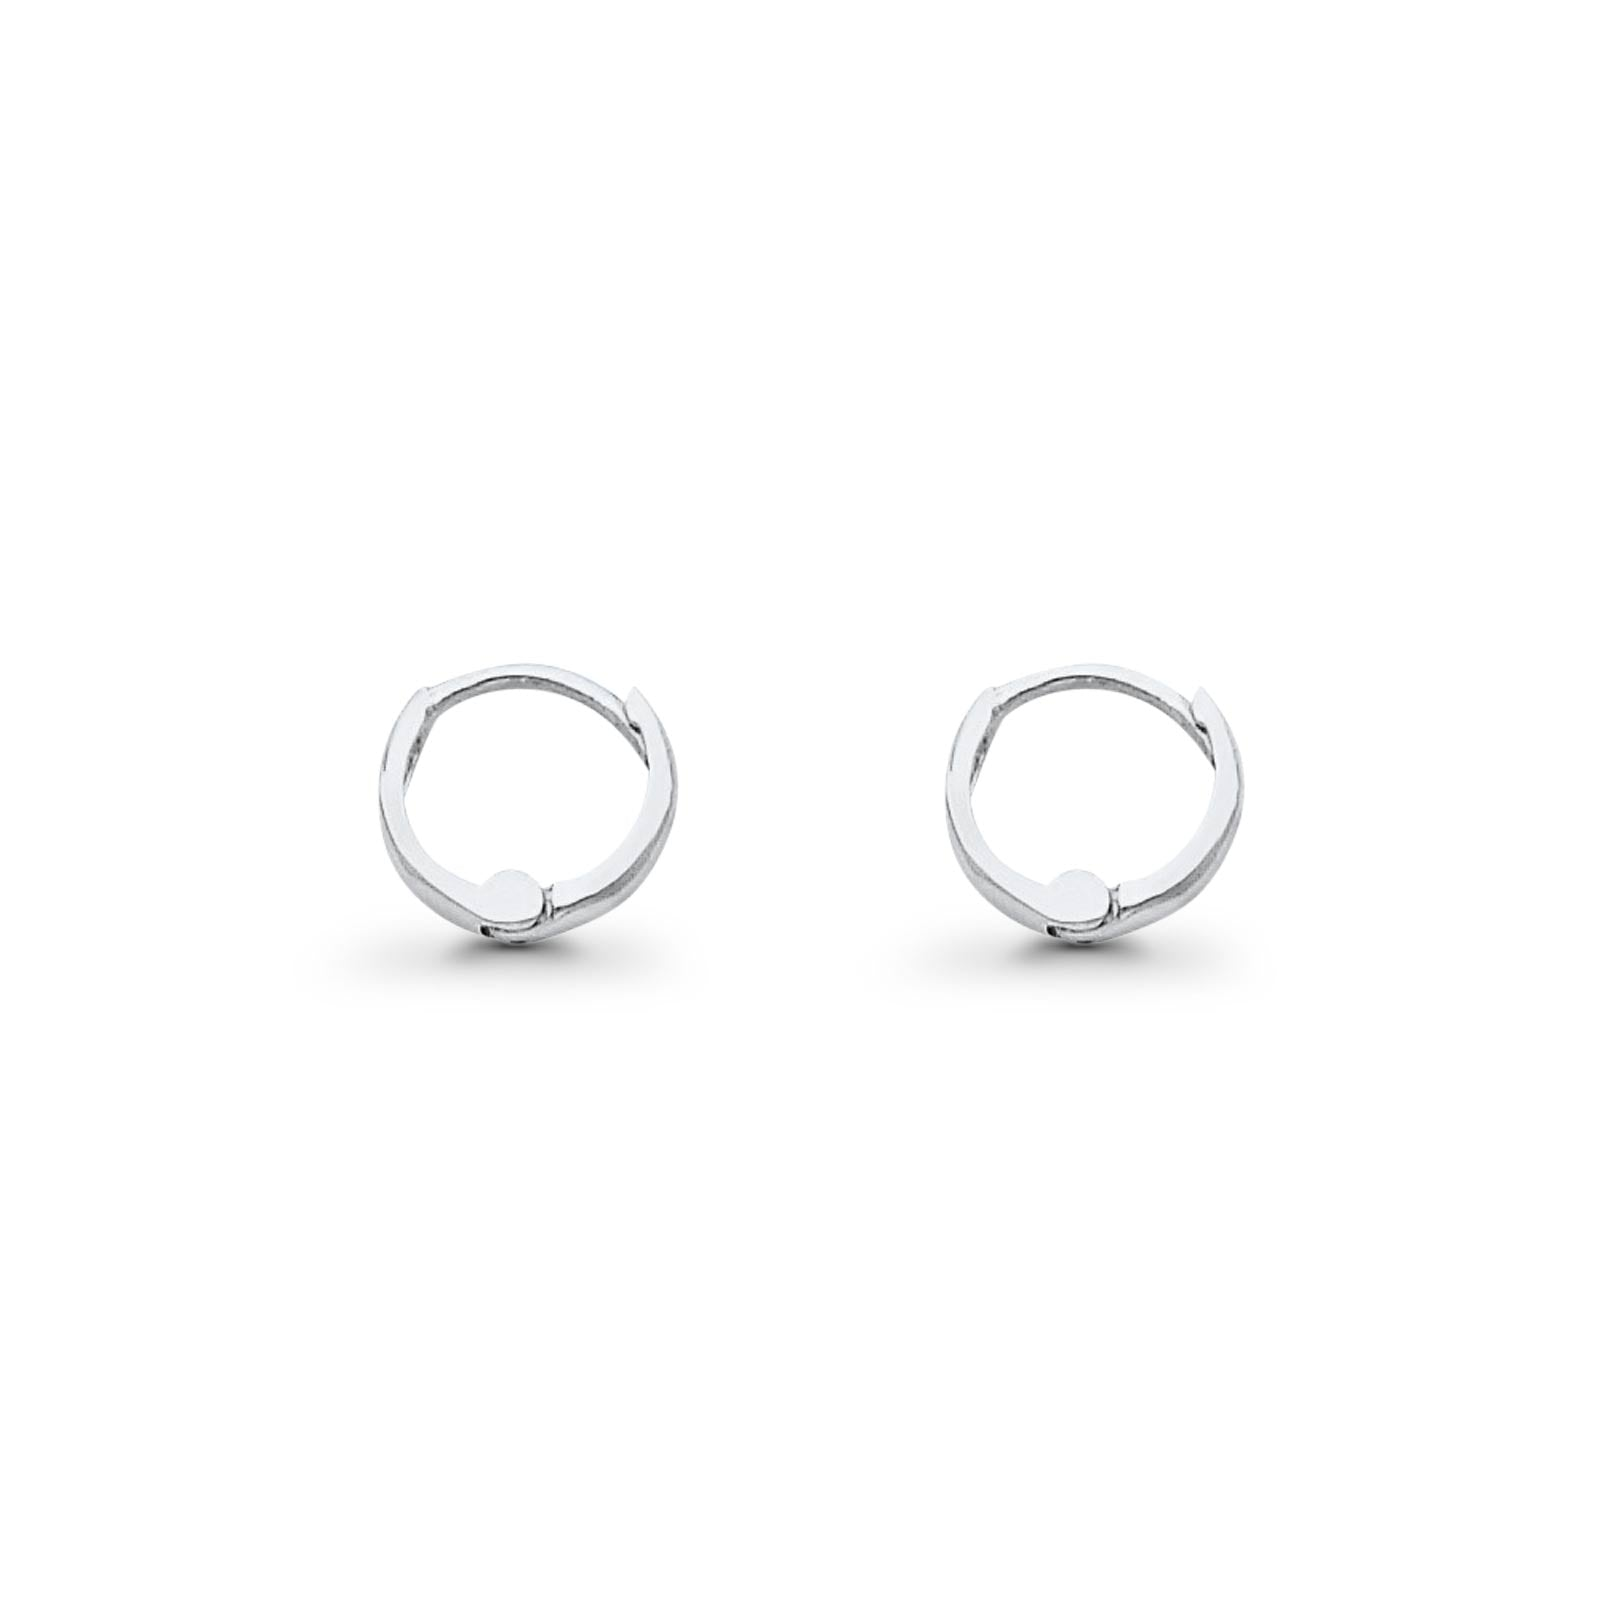 Real White Gold 14K 1.5mm Lovely Huggies Earrings Hinged 0.5grams 8mm